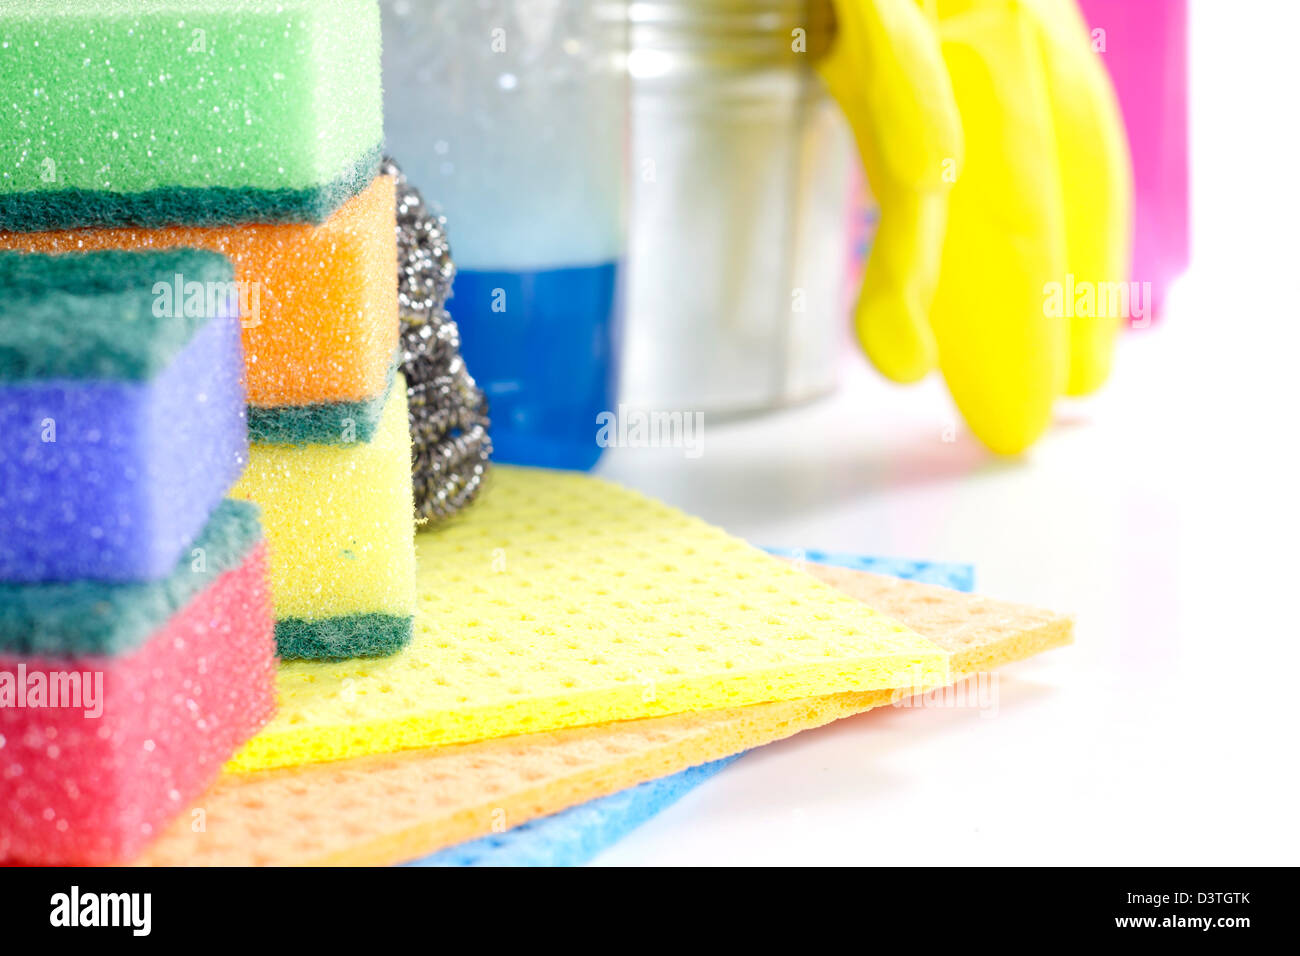 Cleaning tools on white background - Stock Image